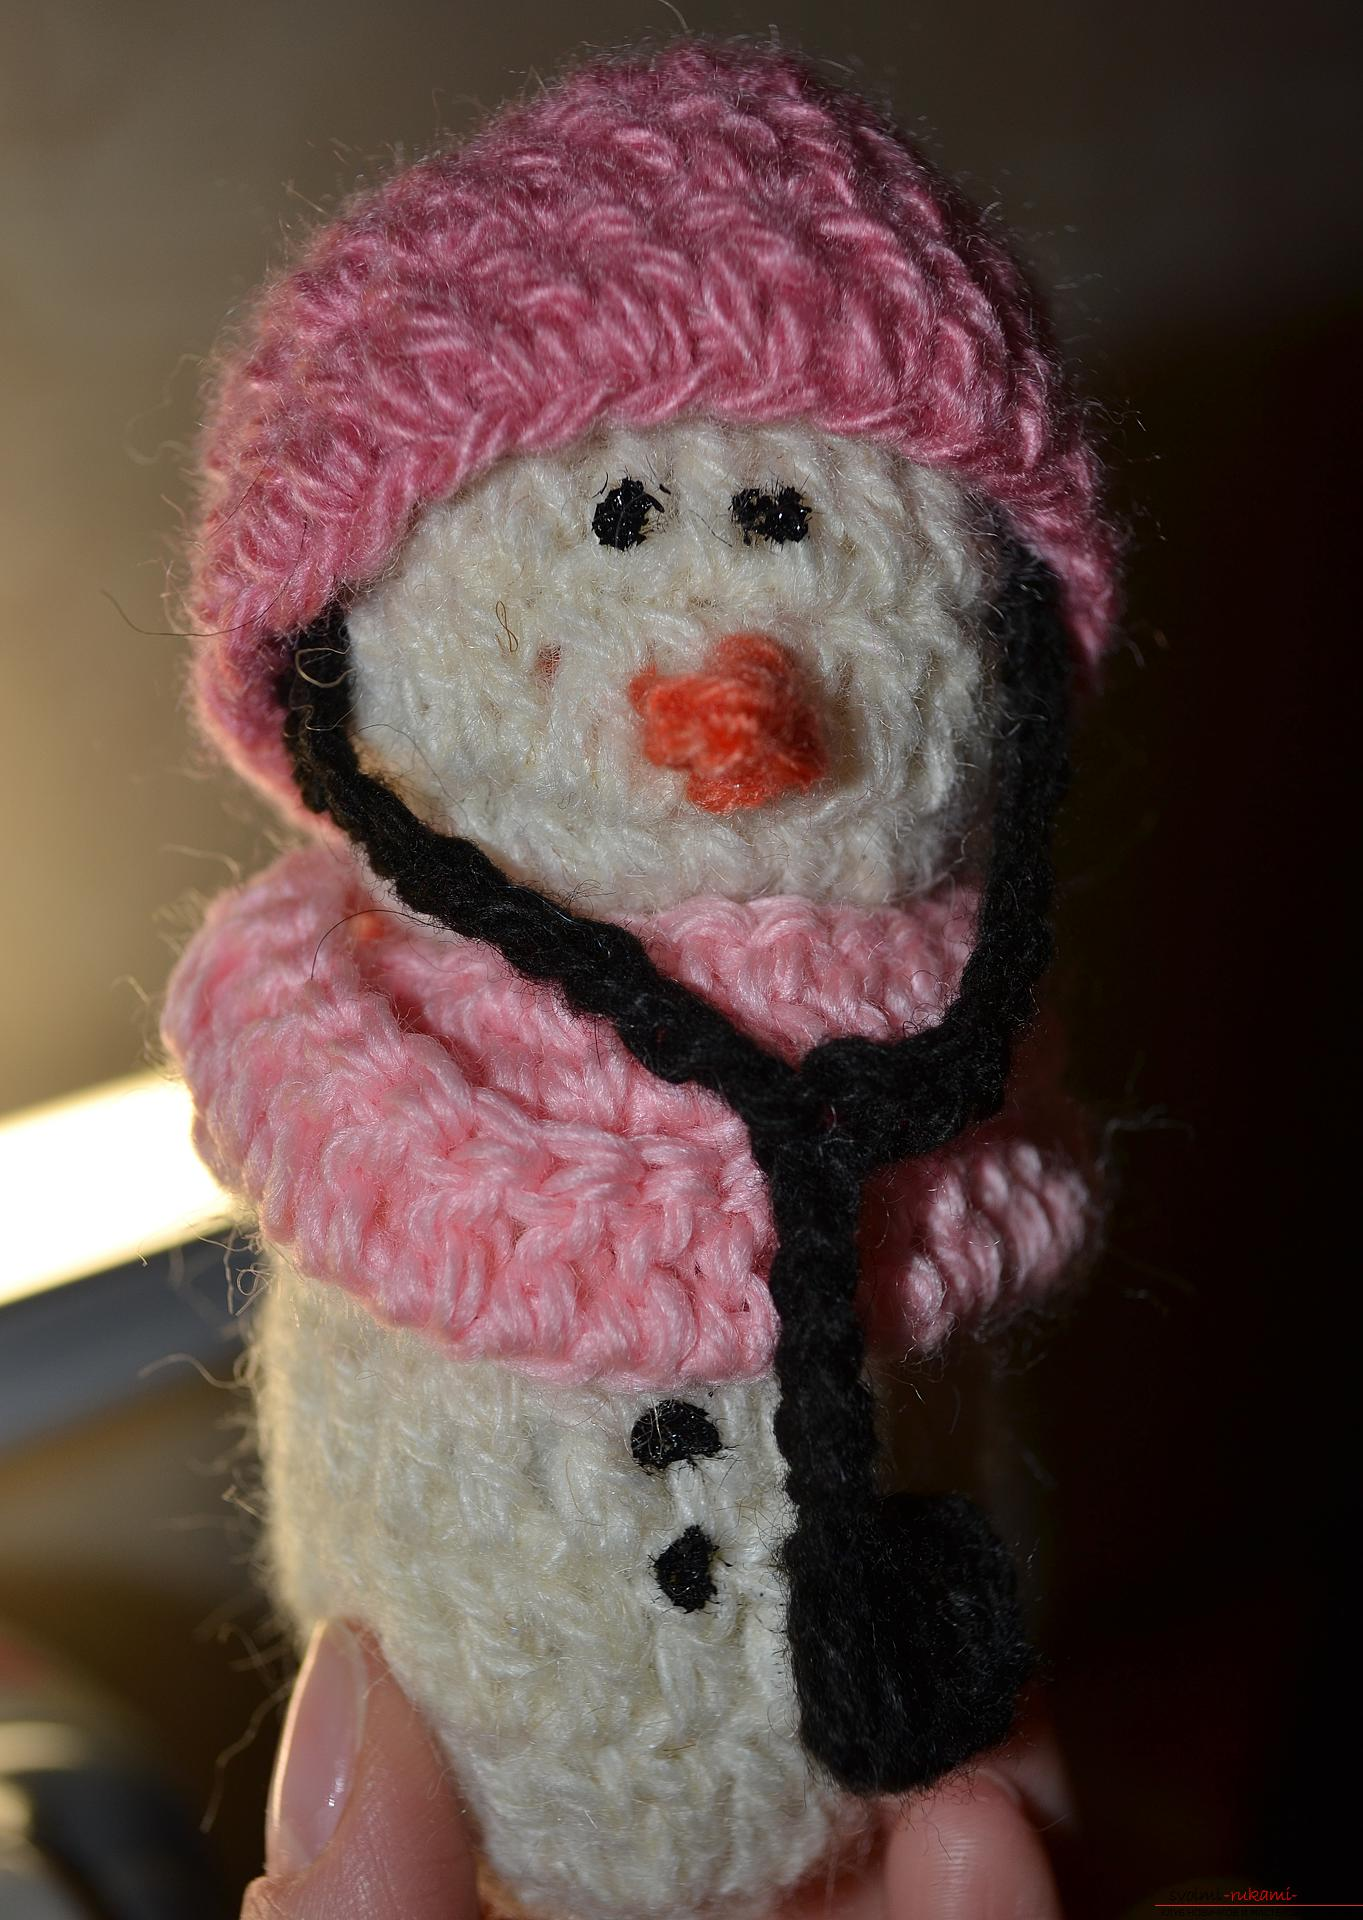 A master class with a photo and description will teach the crocheting of a snowman, which will be understandable for beginners. Photo Number 11